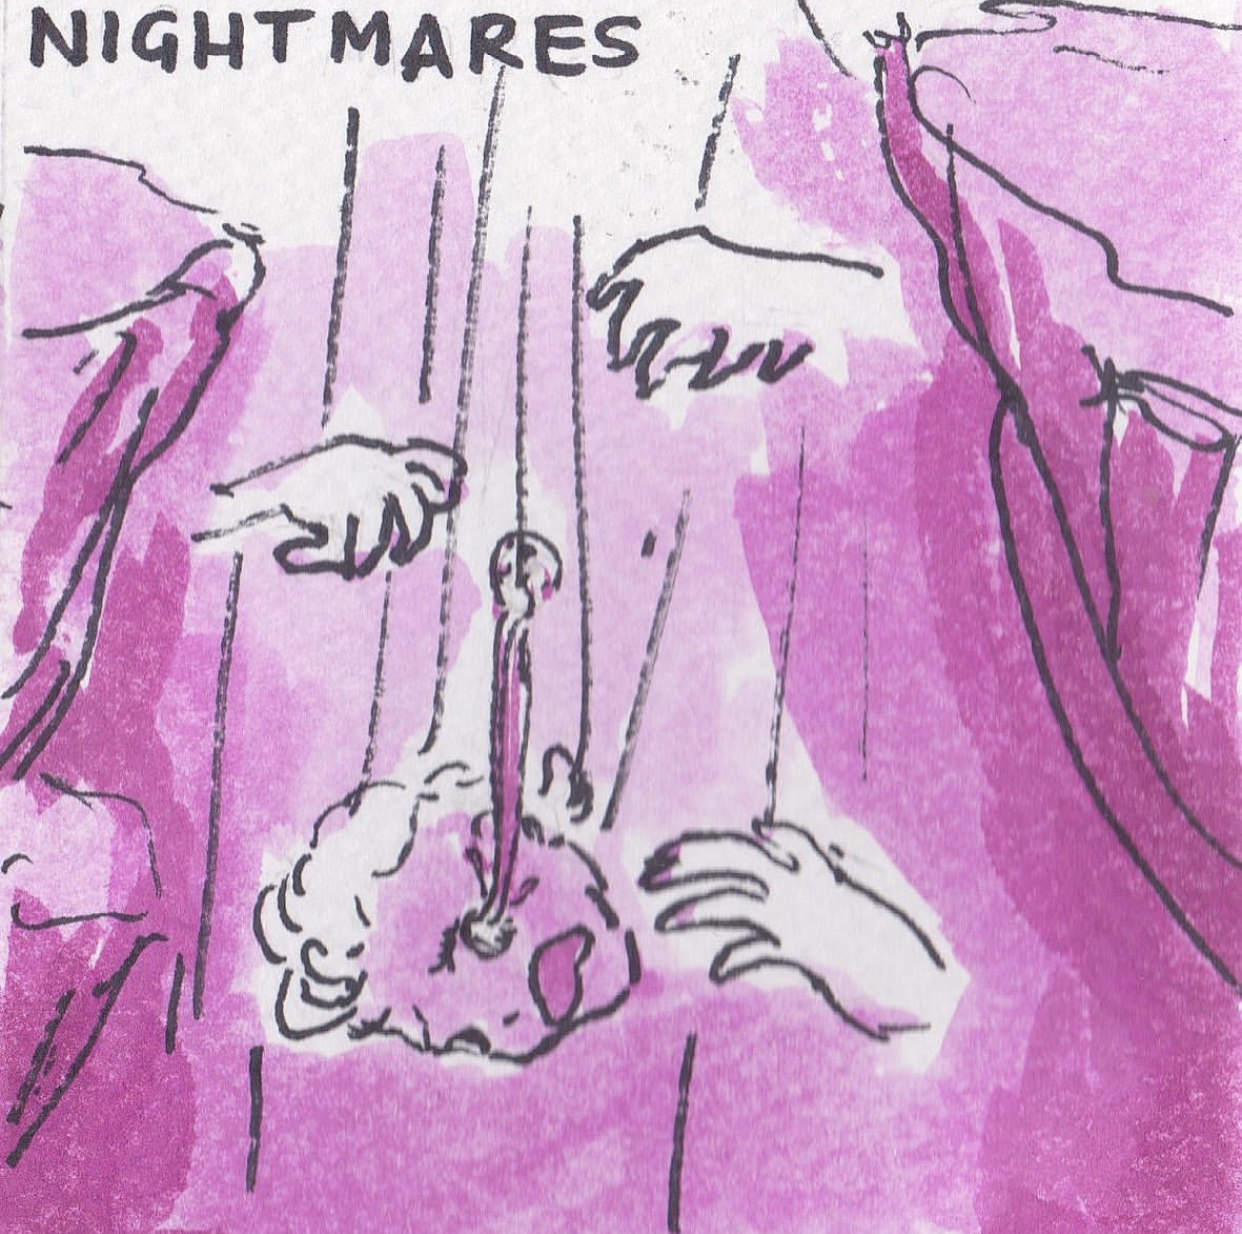 """Elyssa's illustrated comic of PTSD, drawn in ink and coloured in shades of pink and magenta watercolour paint. This image is titled """"Nightmares,"""" and shows Elyssa's disembodied head free-falling down a cavern. On either side, disembodied hands reach out to grab her. One of her eyeballs is falling out and trailing behind her."""